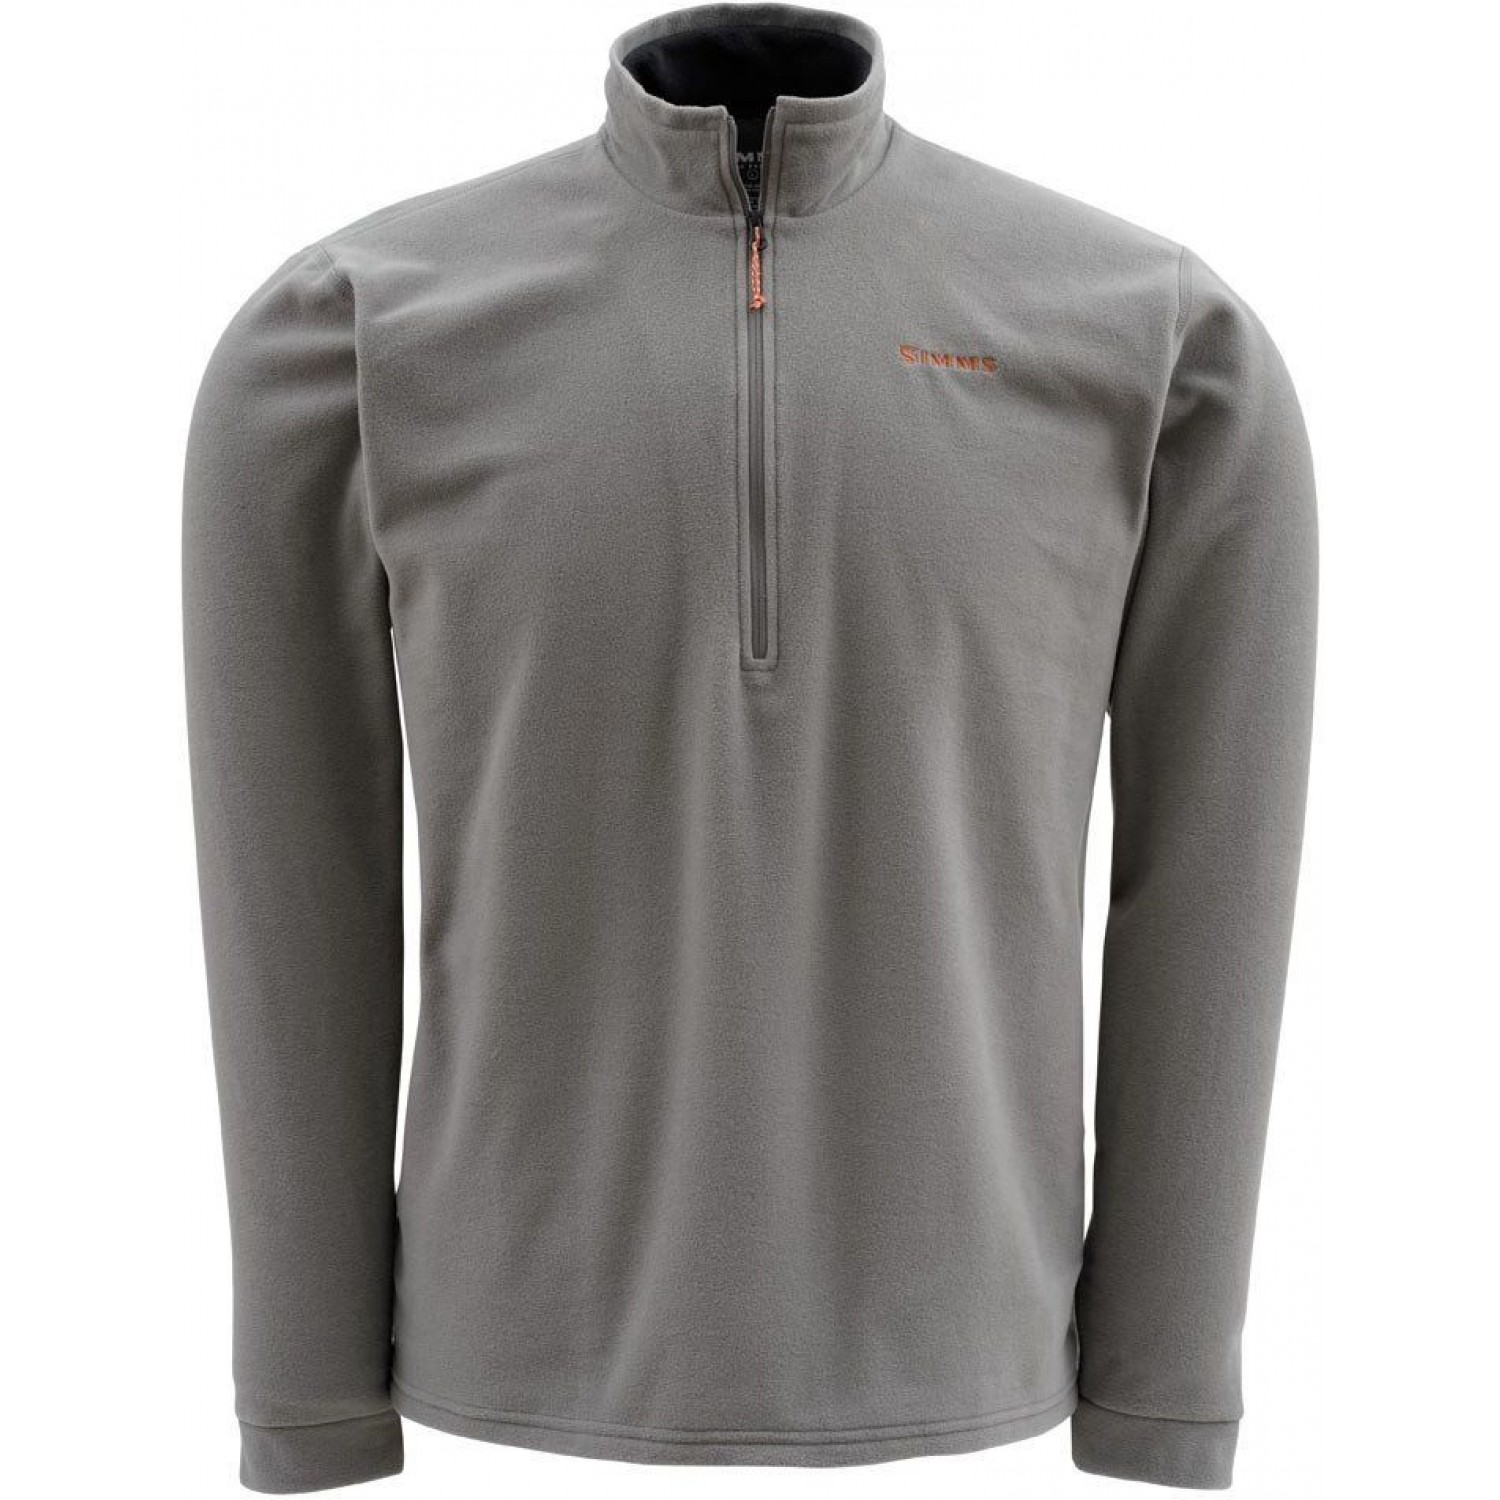 Simms Waderwick Thermal Top Gunmetal